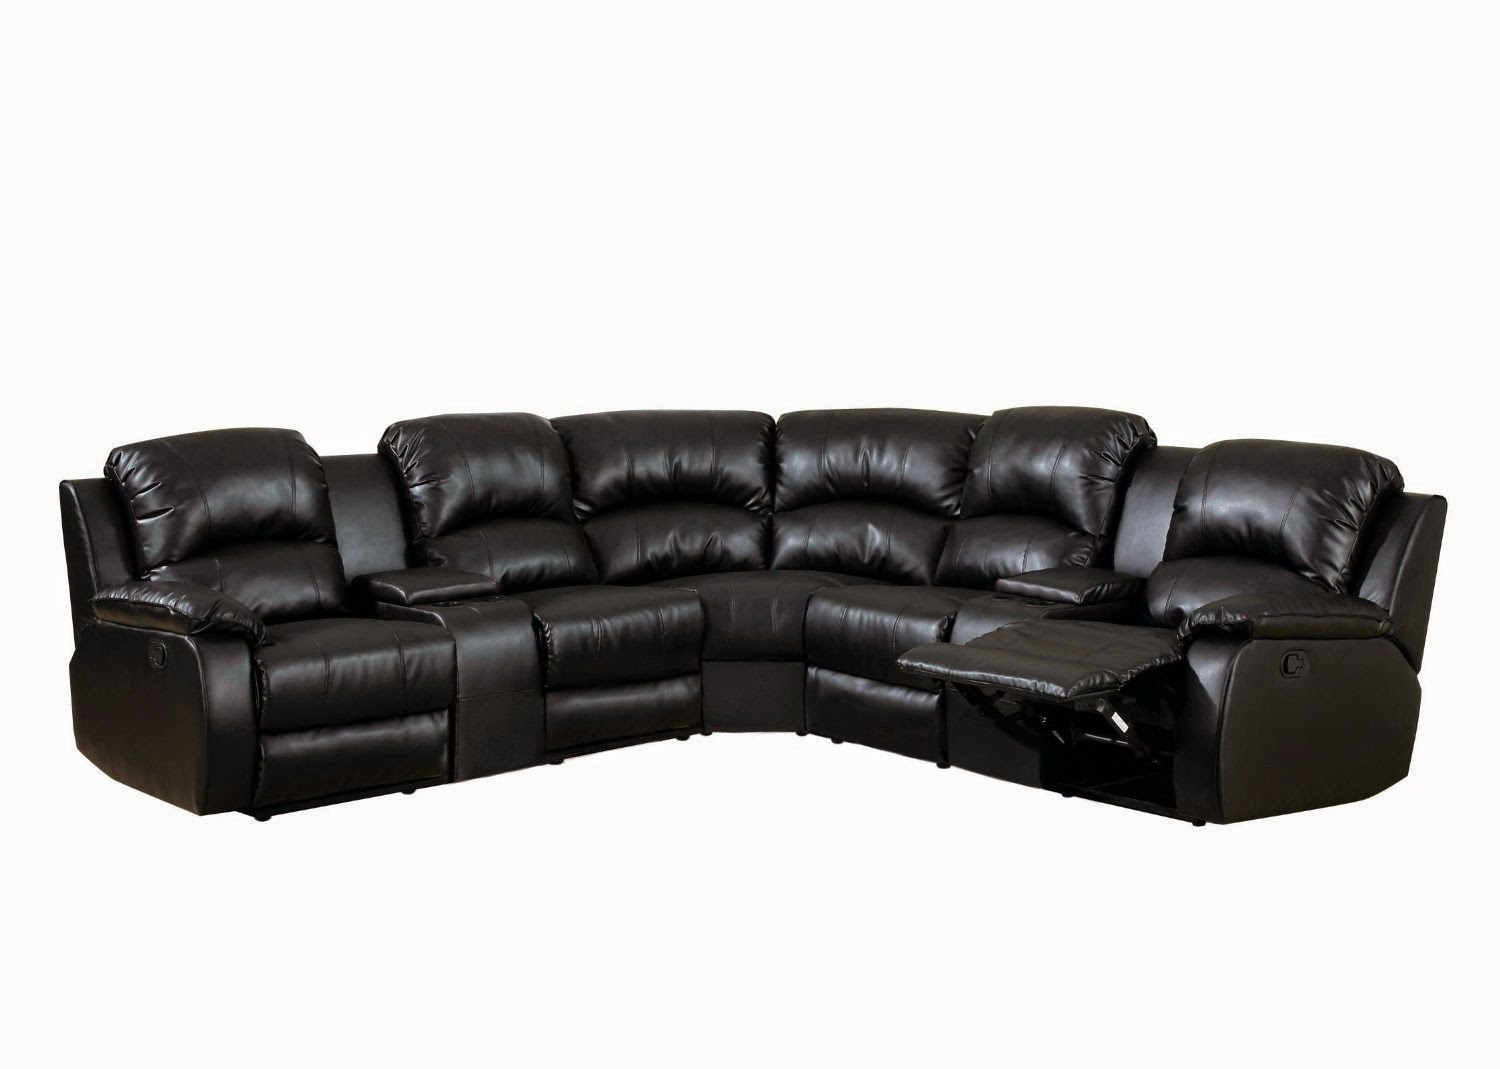 Best recliner sofa brand recommendation wanted curved for Curved leather sectional sofa uk